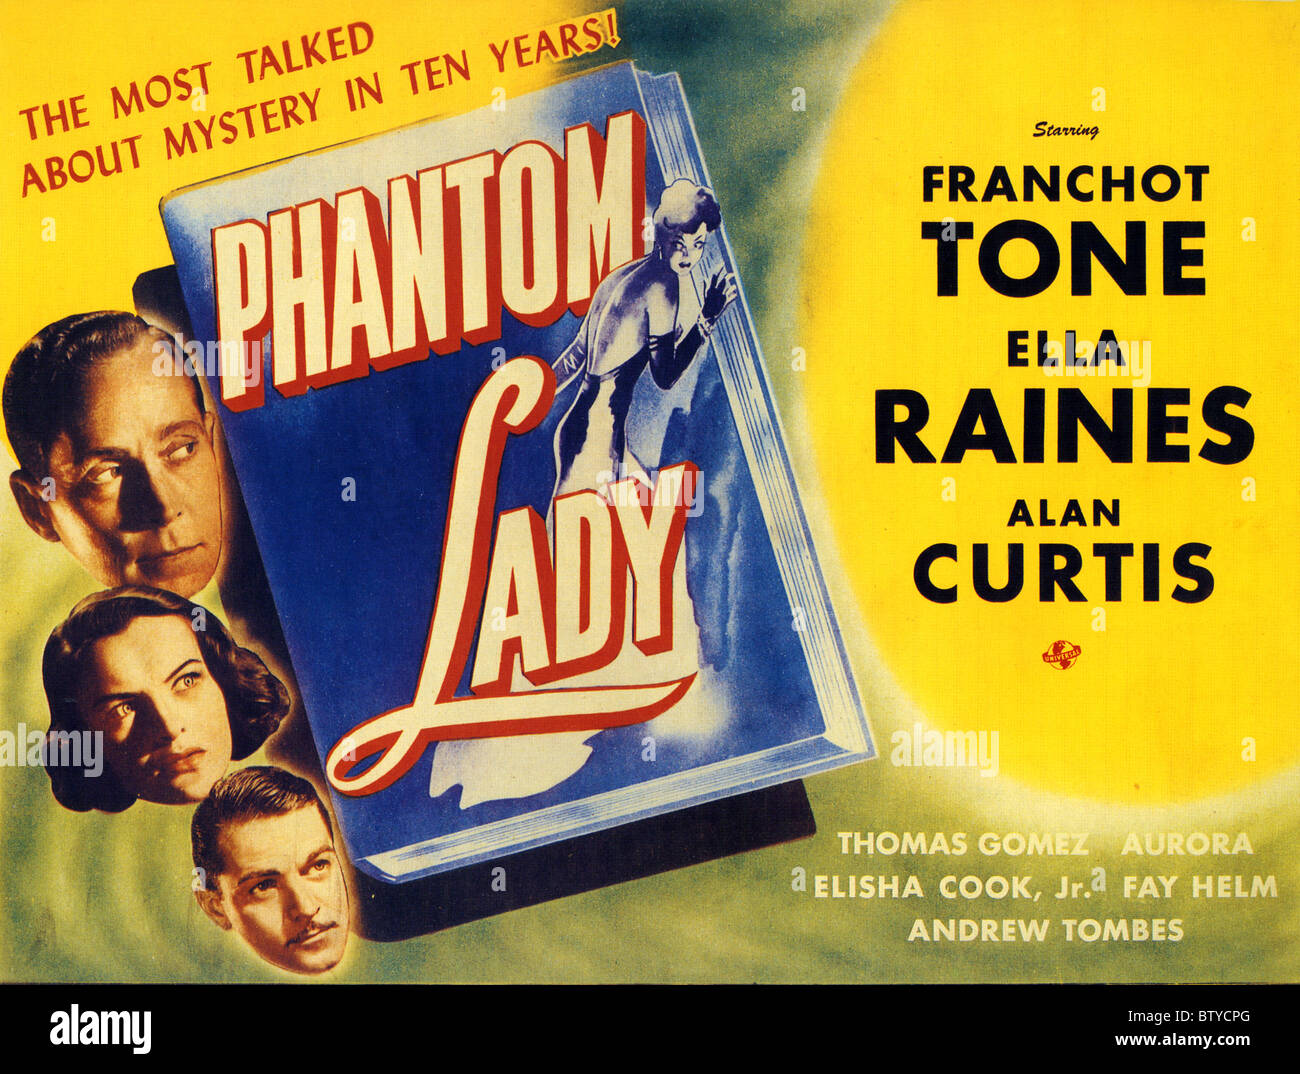 PHANTOM LADY Poster for 1944 Universal film with Franchot Tone - Stock Image